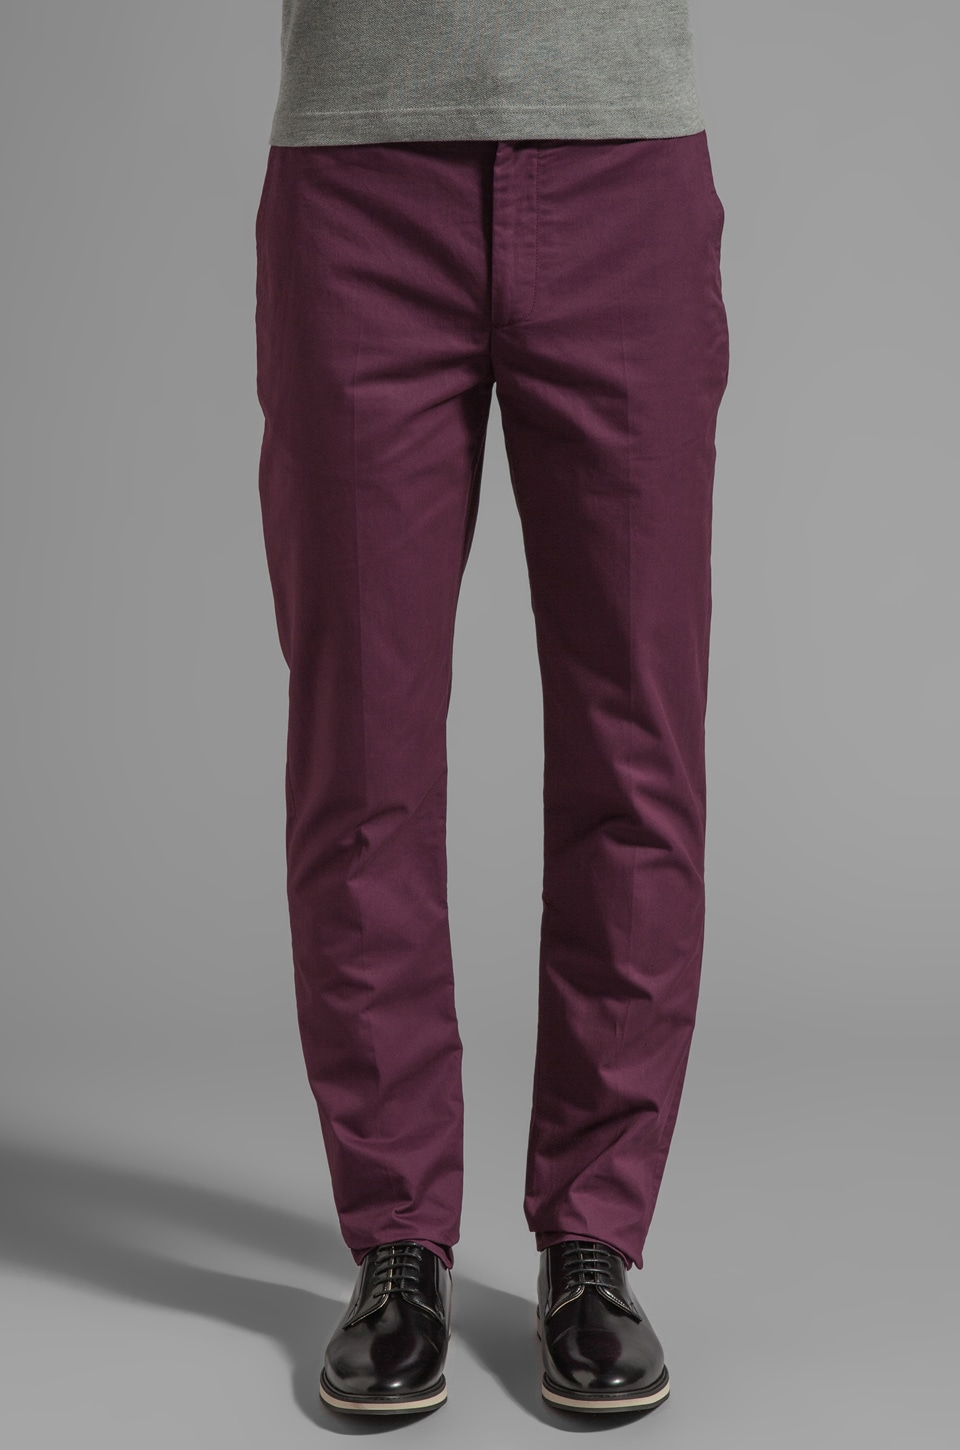 Marc by Marc Jacobs Aspen Cotton Pant in Midnight Cranberry